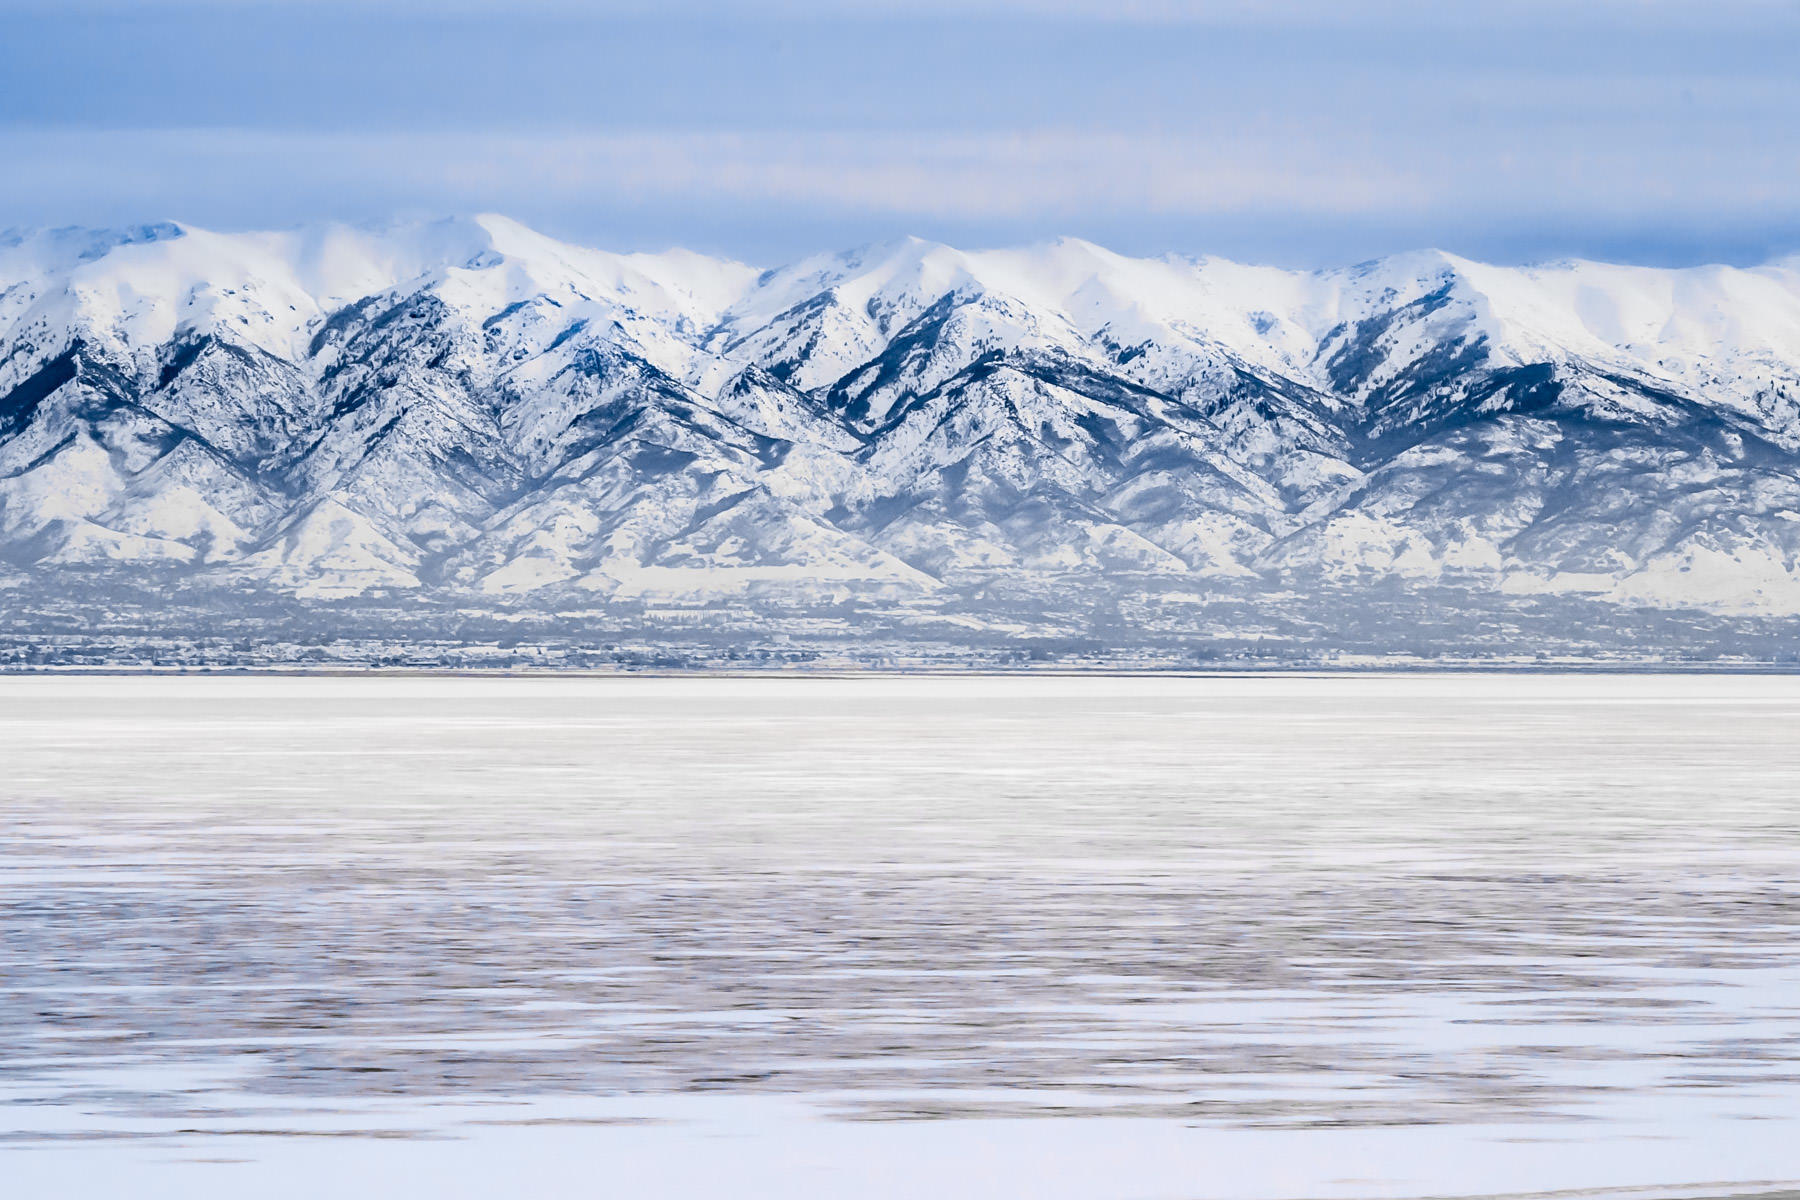 The Wasatch Front, shrouded in fog, as seen from Antelope State Park on the Great Salt Lake, Utah.